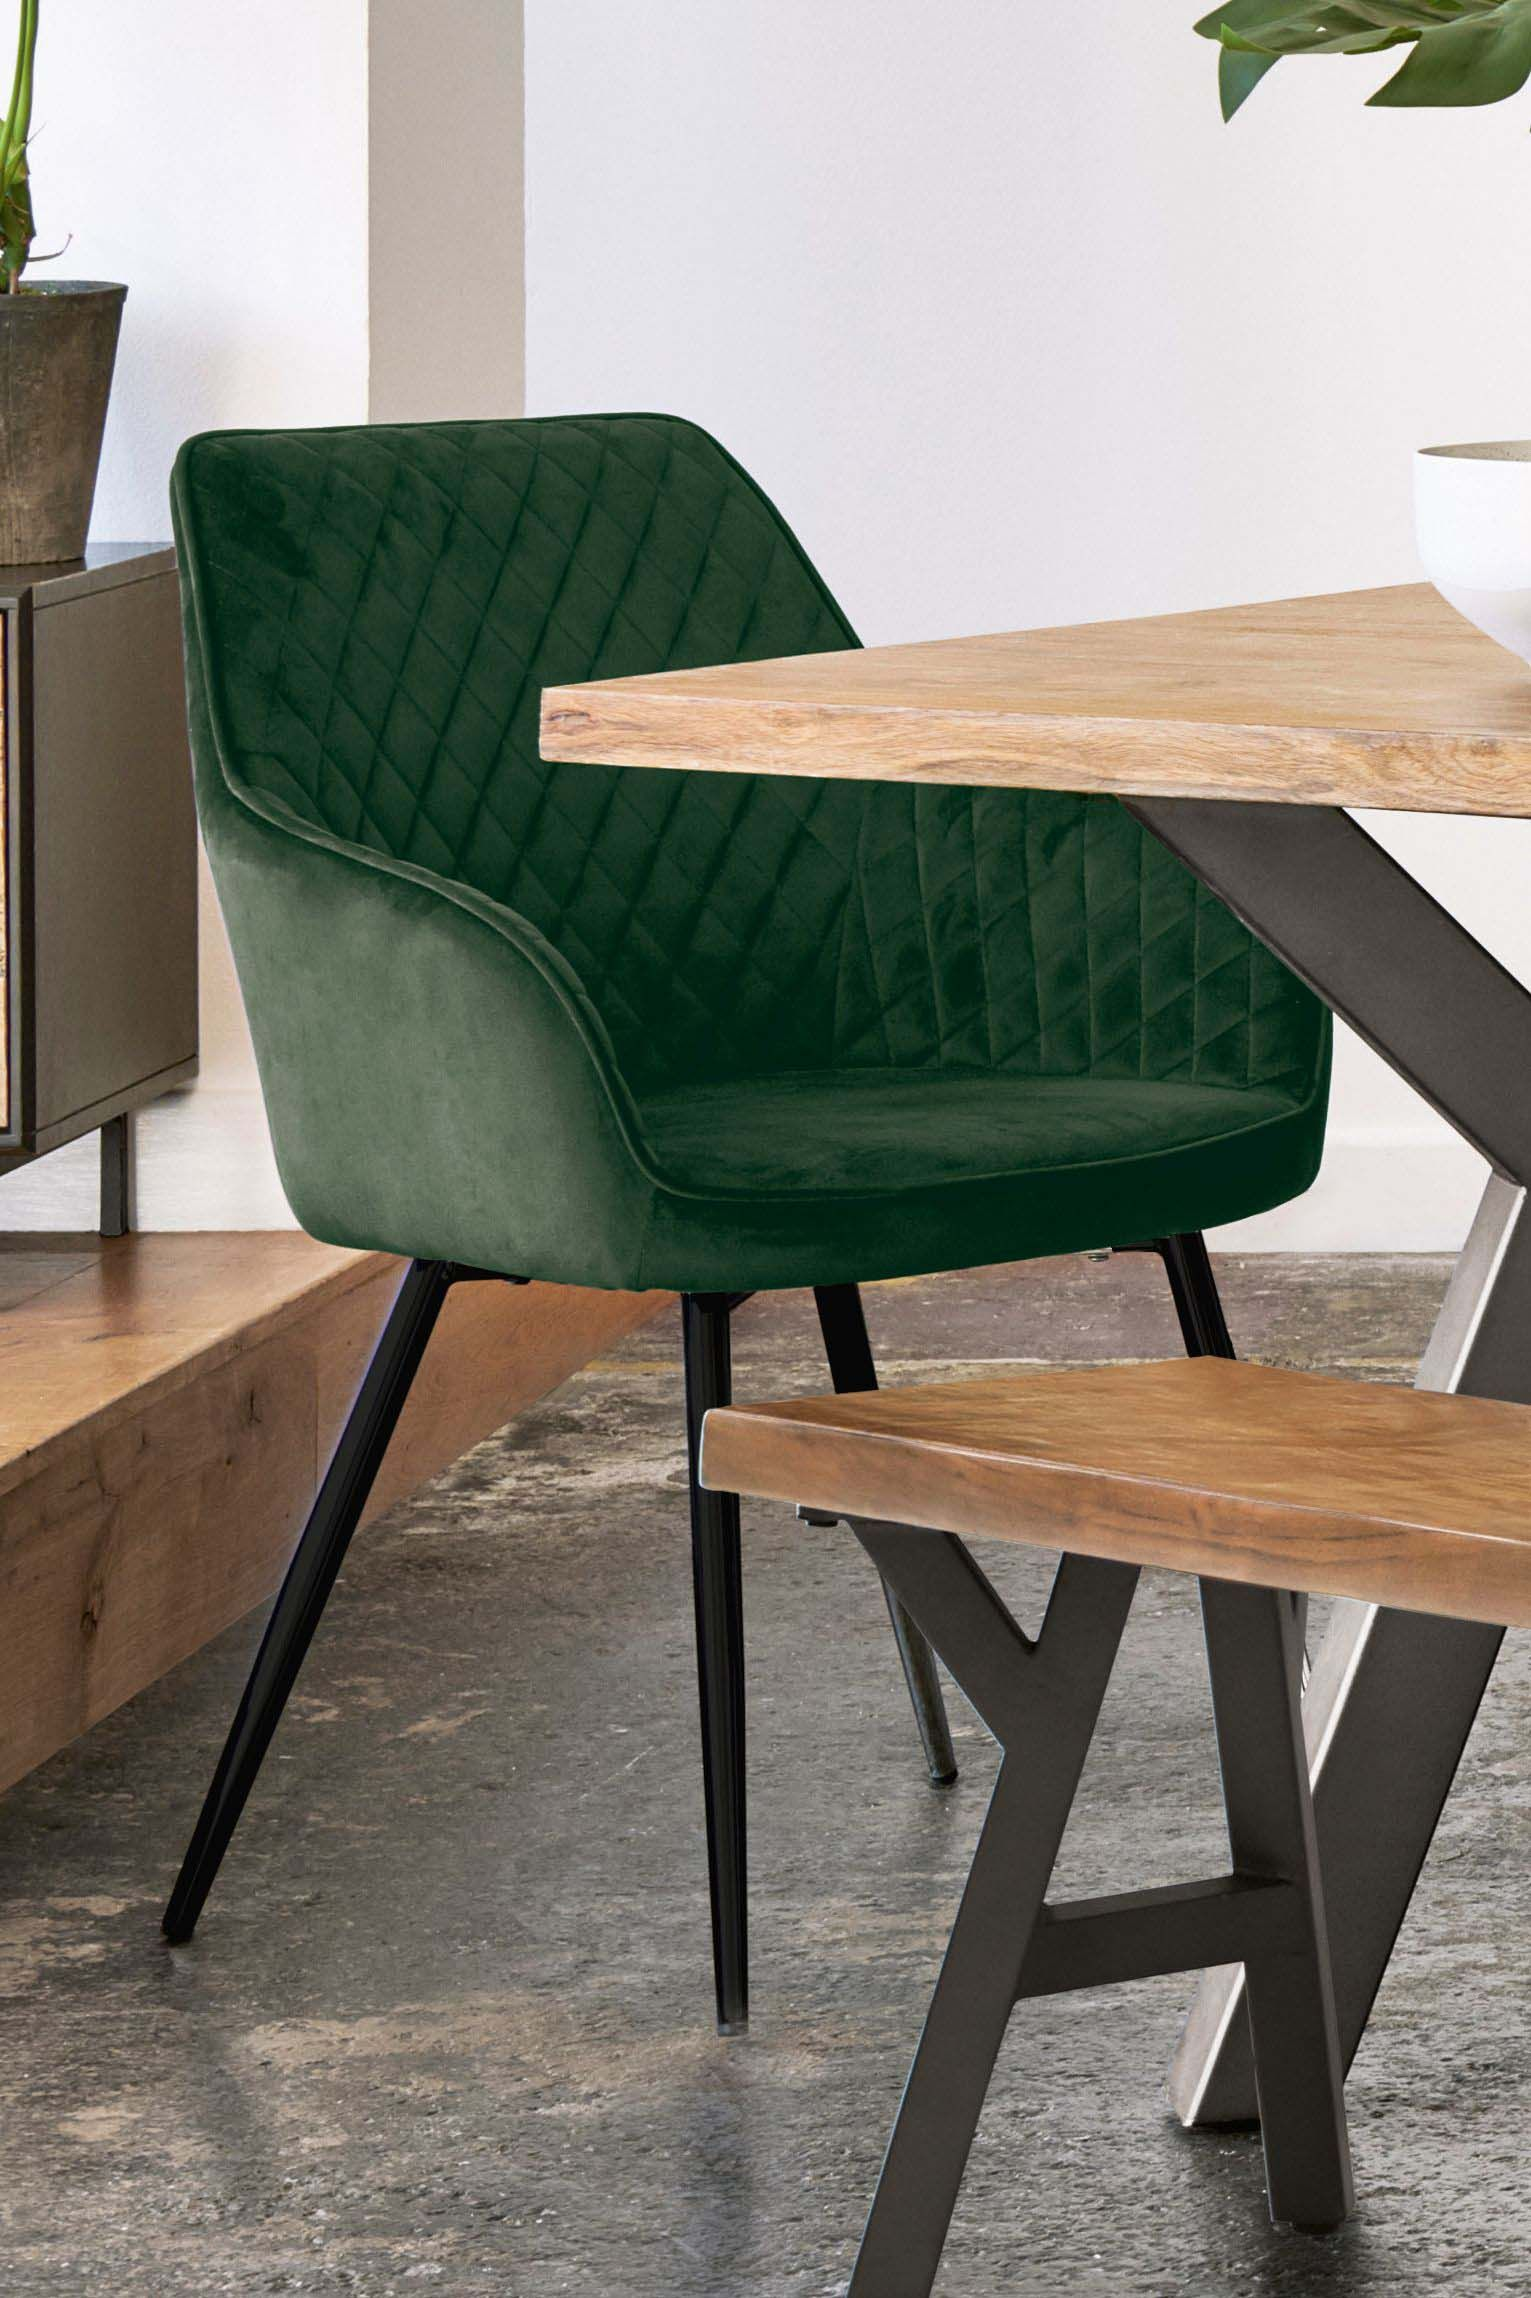 Buy Set Of 2 Hamilton Chairs With Arms From The Next Uk Online Shop In 2020 Dining Chairs Green Dining Chairs Chair